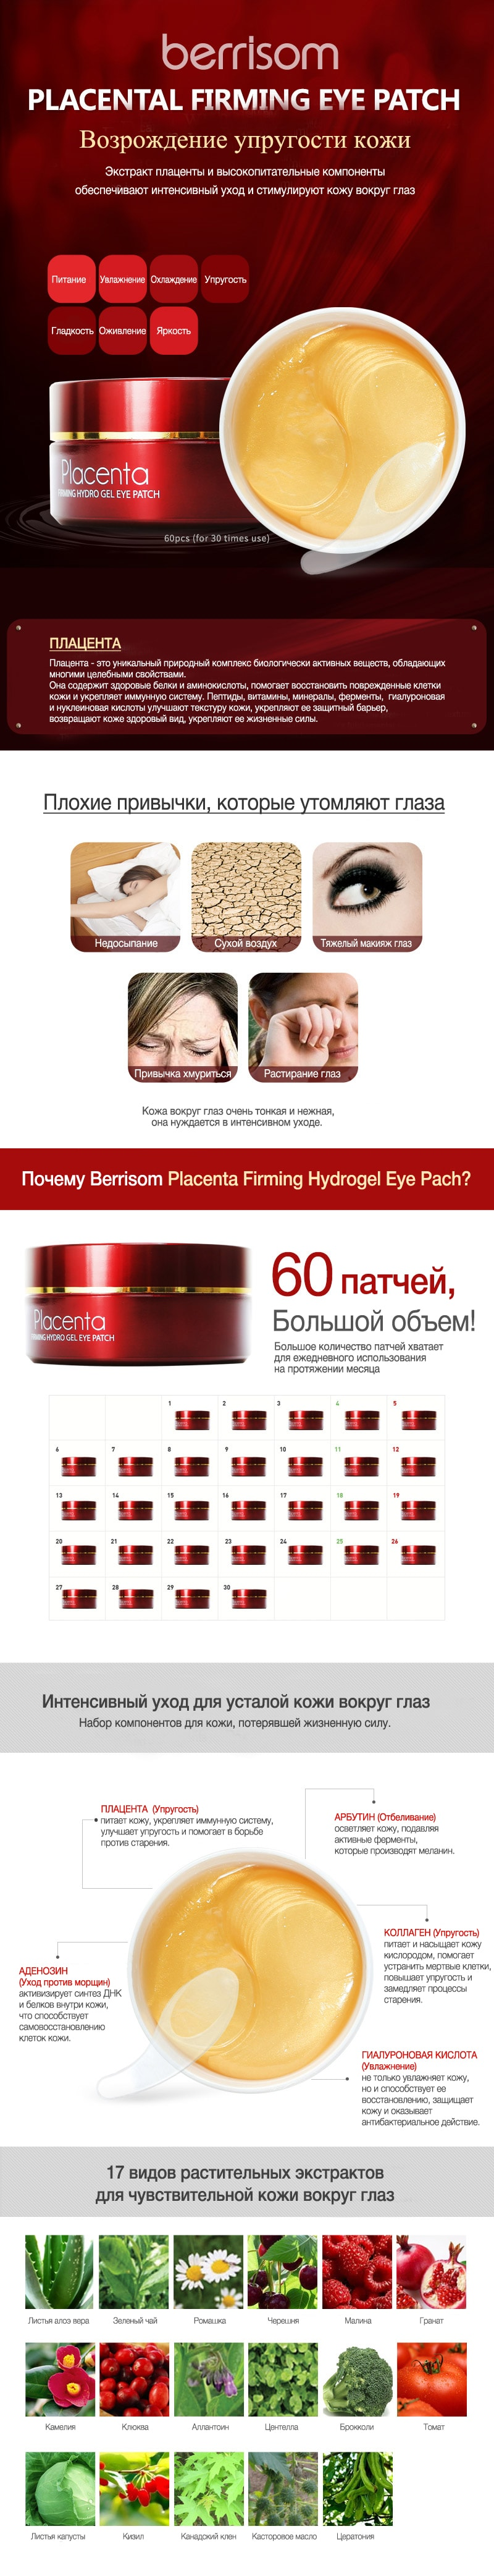 placenta firming Hydrogel eye patch-min